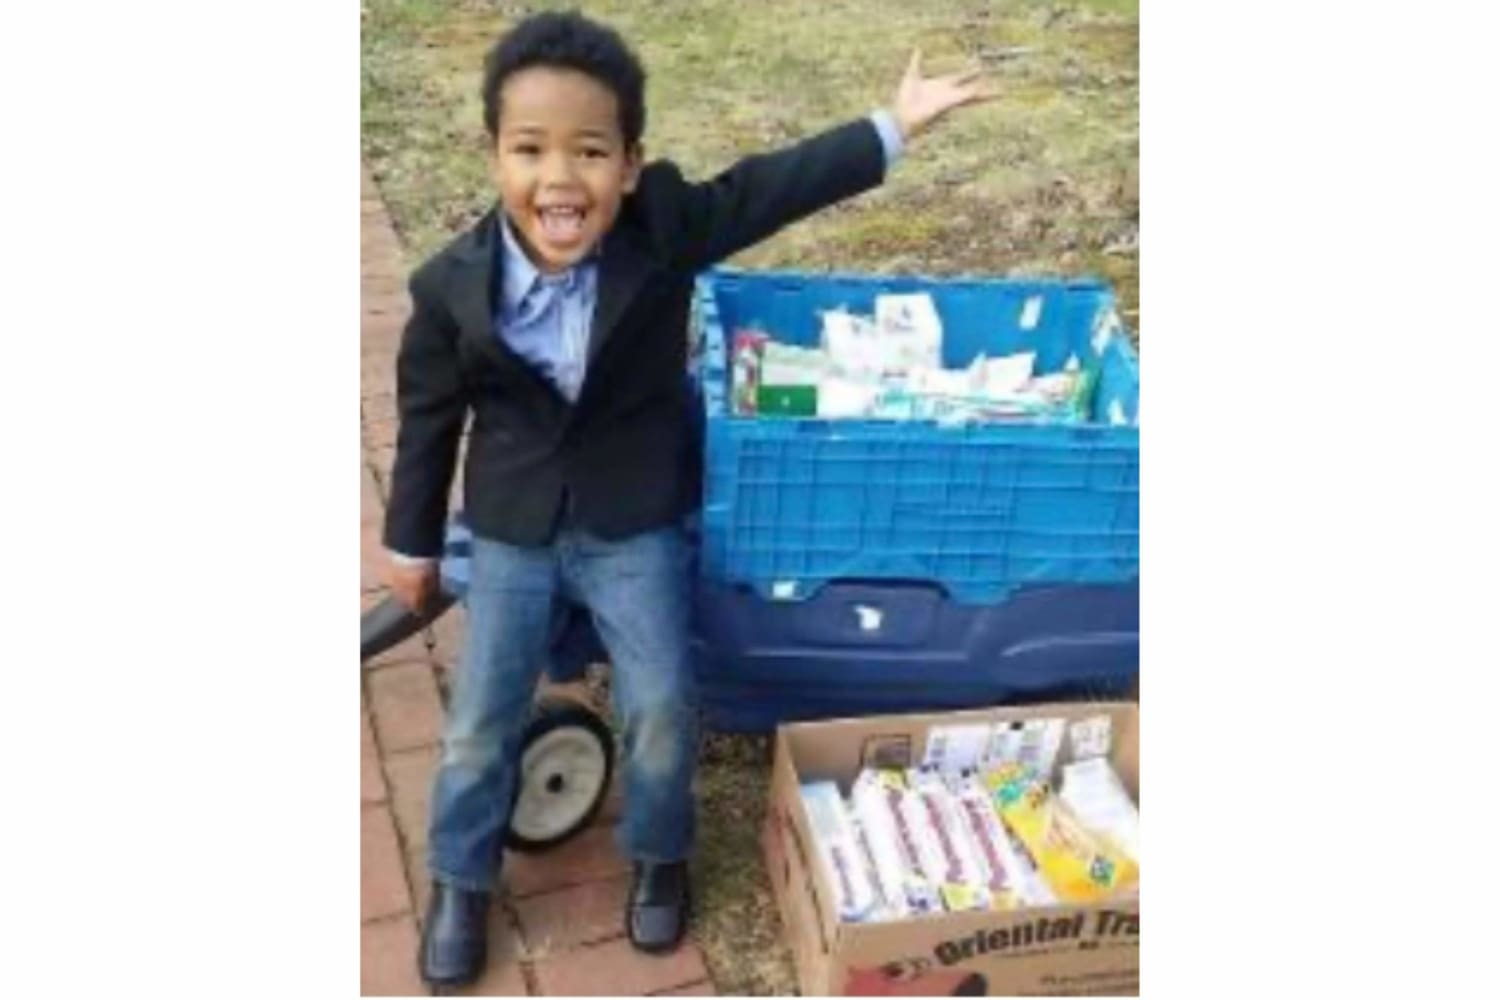 Thousands of homeless veterans have been helped by this 8 year old